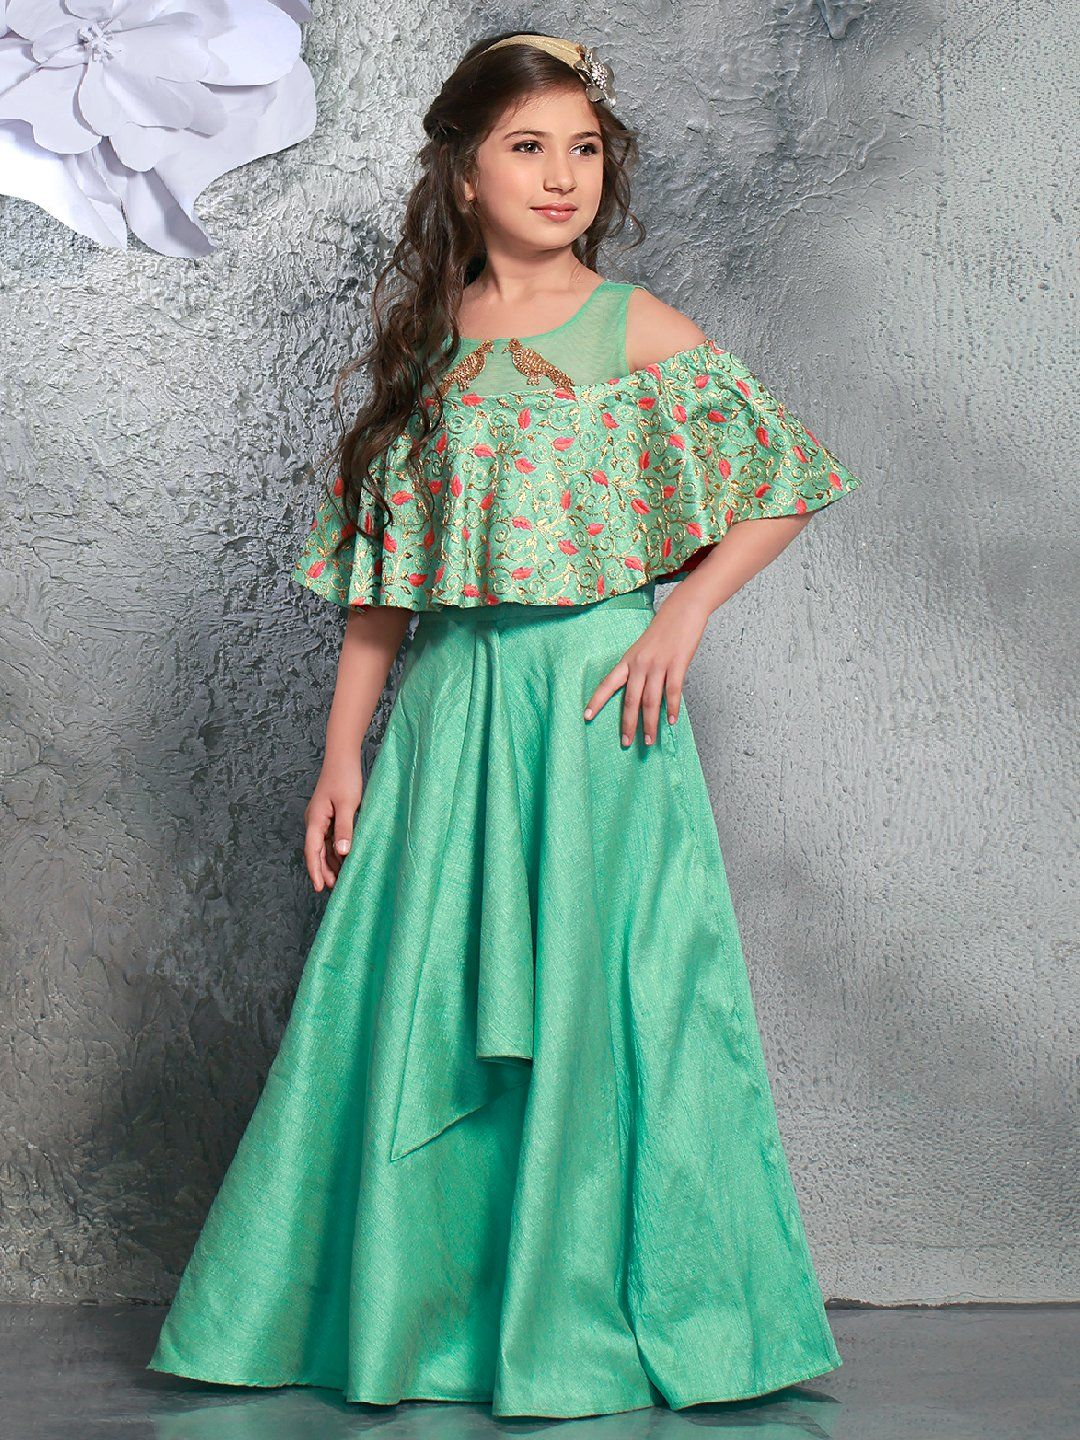 eaf6ad1e2 Girls Gowns: Buy Girls designer gown dresses & frocks Online, Girls Party &  Wedding Gown